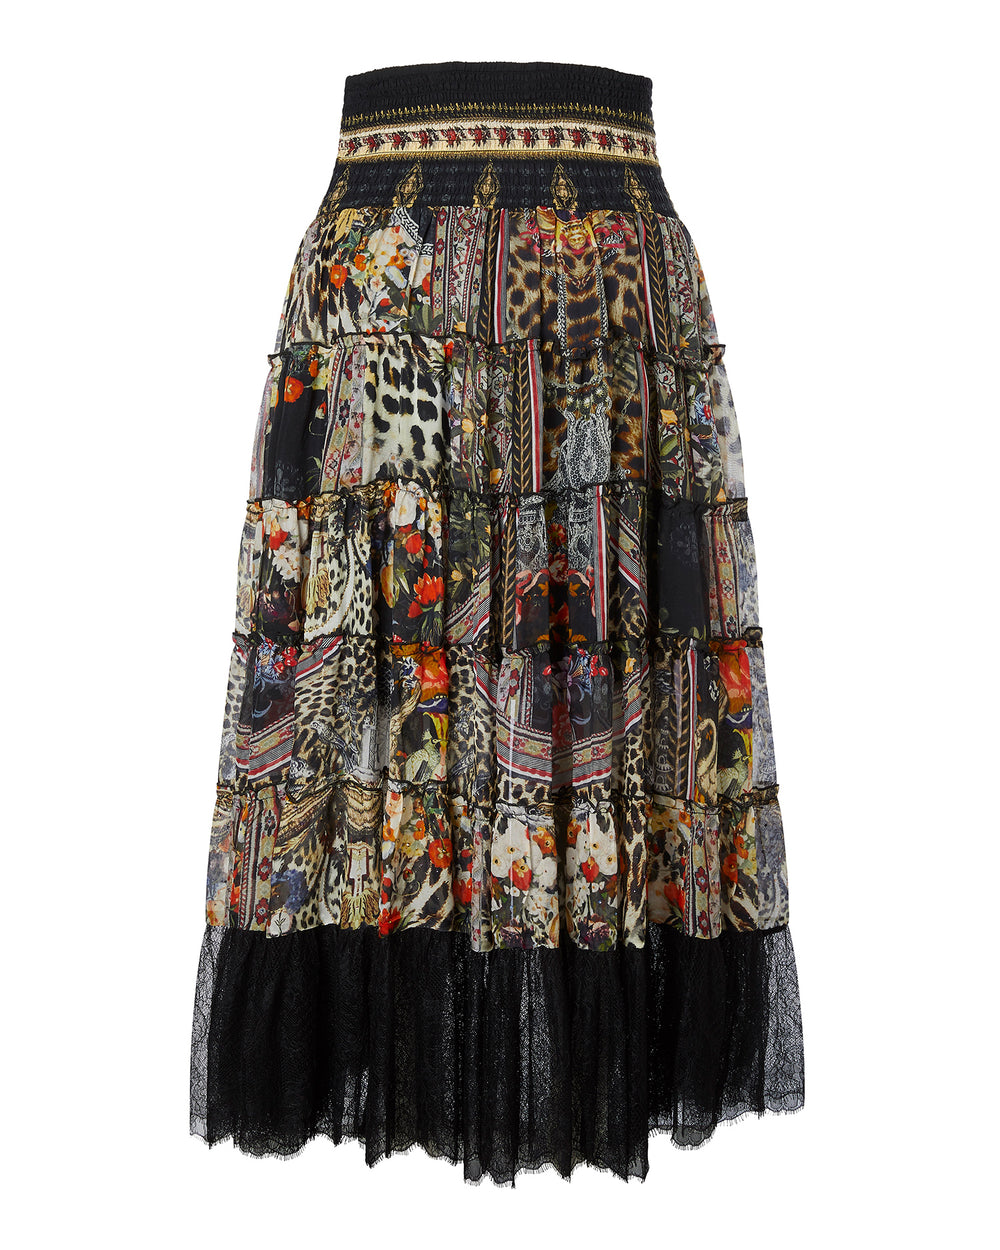 Sheer Tiered Circle Skirt